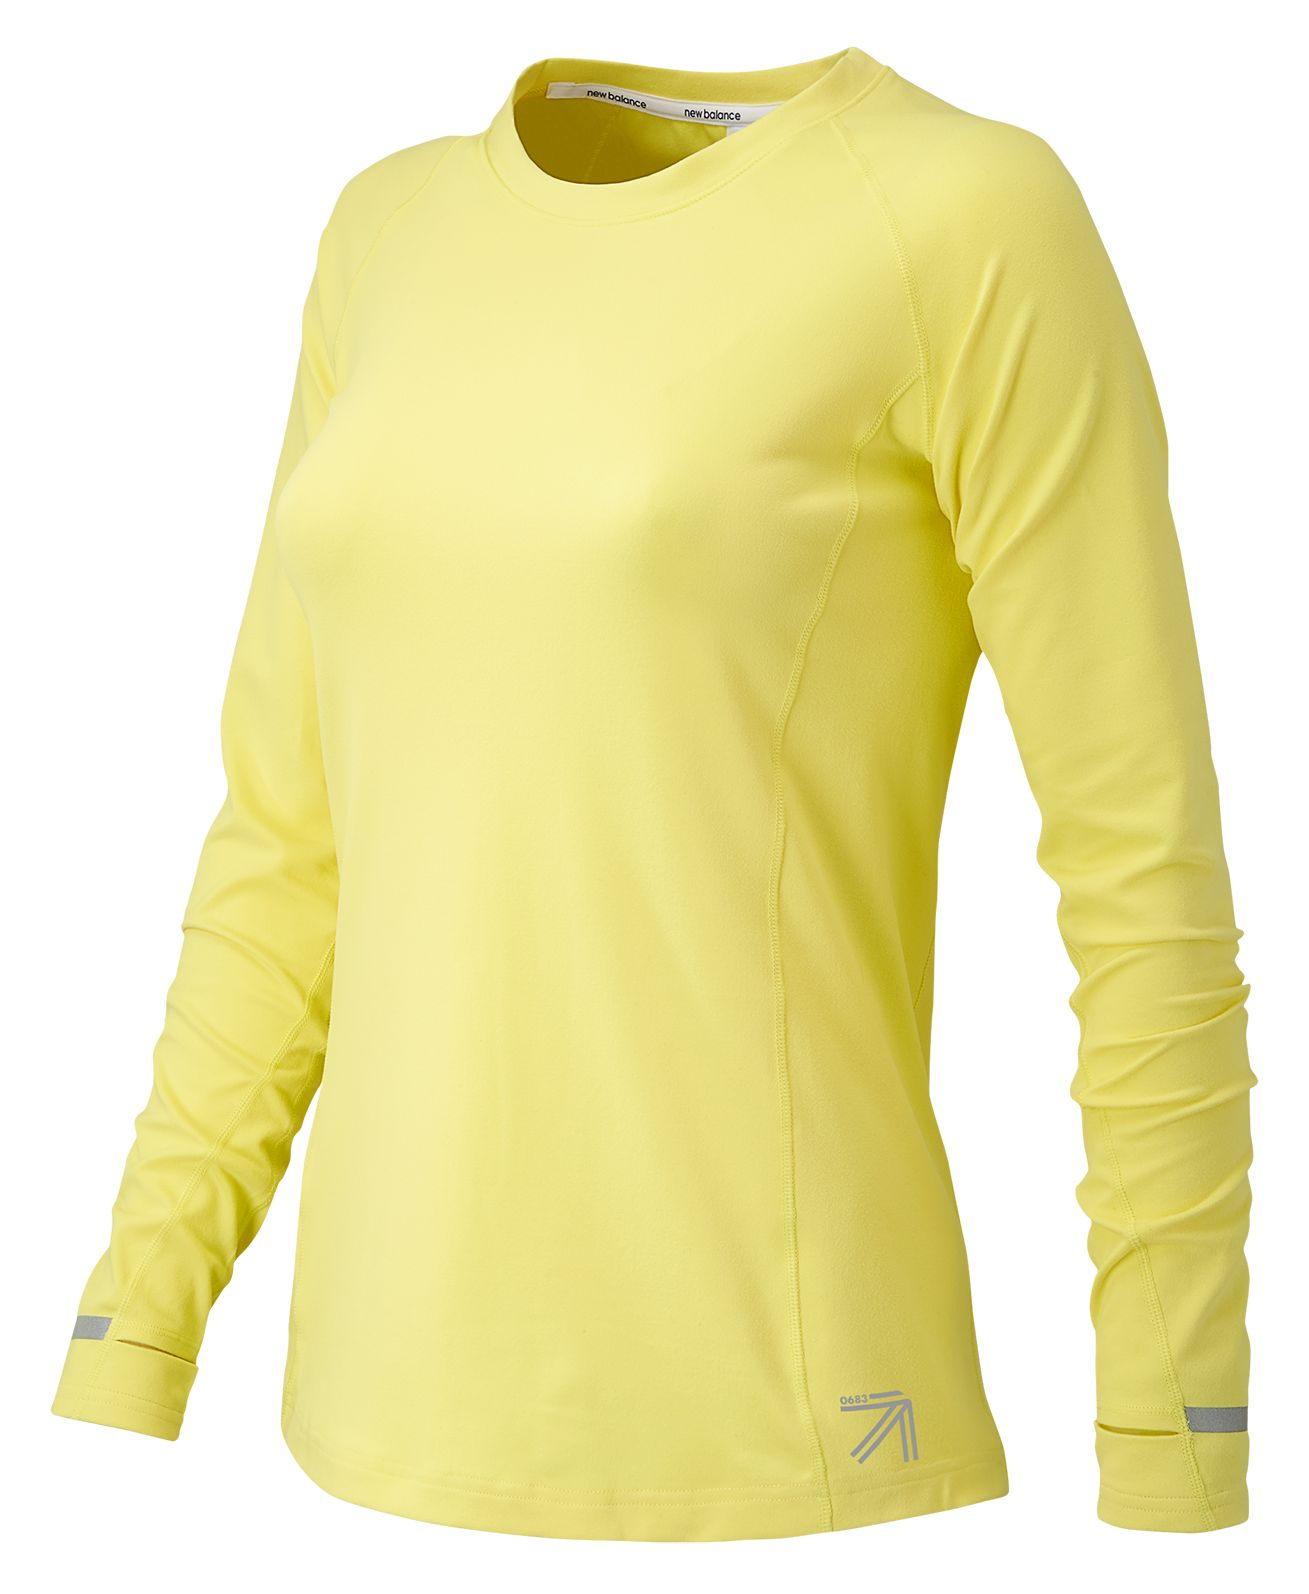 New Balance : J.Crew In Transit Long Sleeve : Women's J Crew : WT71243VVY